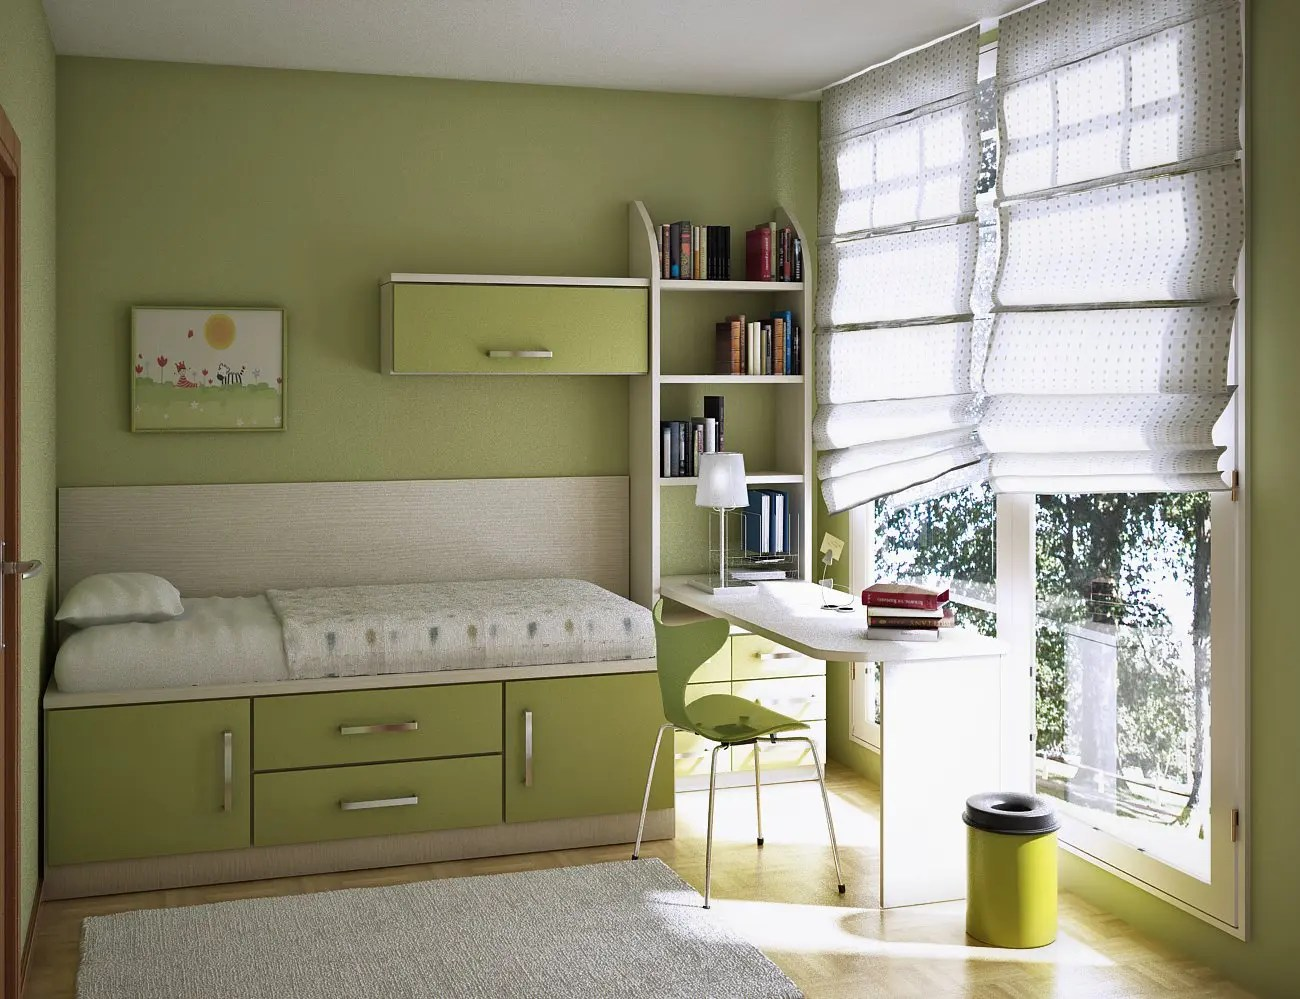 17 Cool Teen Room Ideas - DigsDigs on Rooms For Teenagers  id=60881